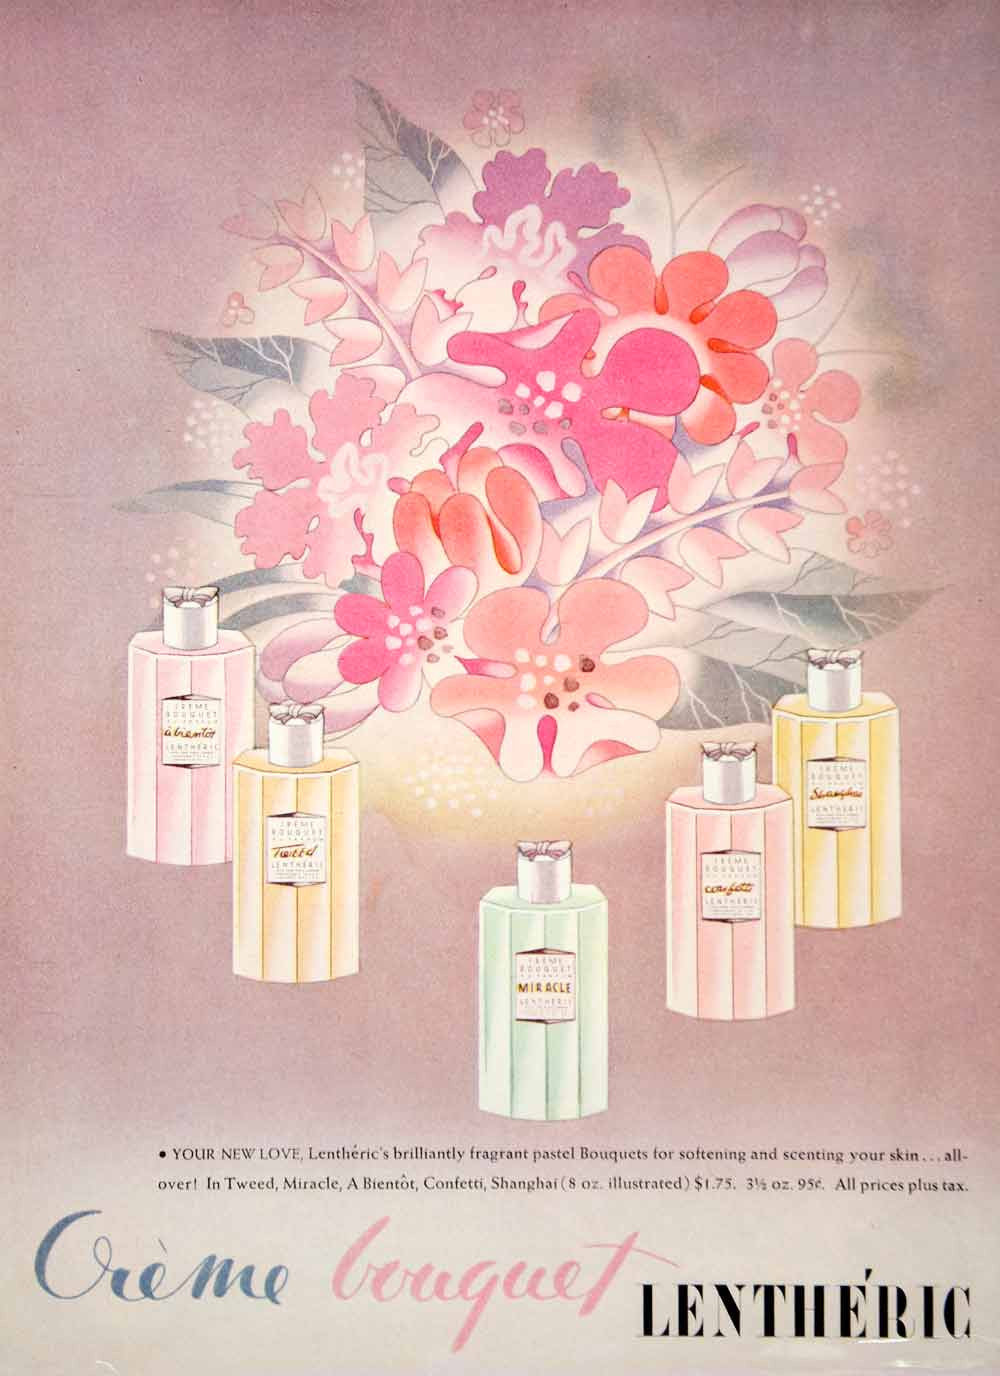 1944 Ad Vintage Lentheric Creme Bouquet Skin Care Perfume Scents Fragrance YHB4 - Period Paper